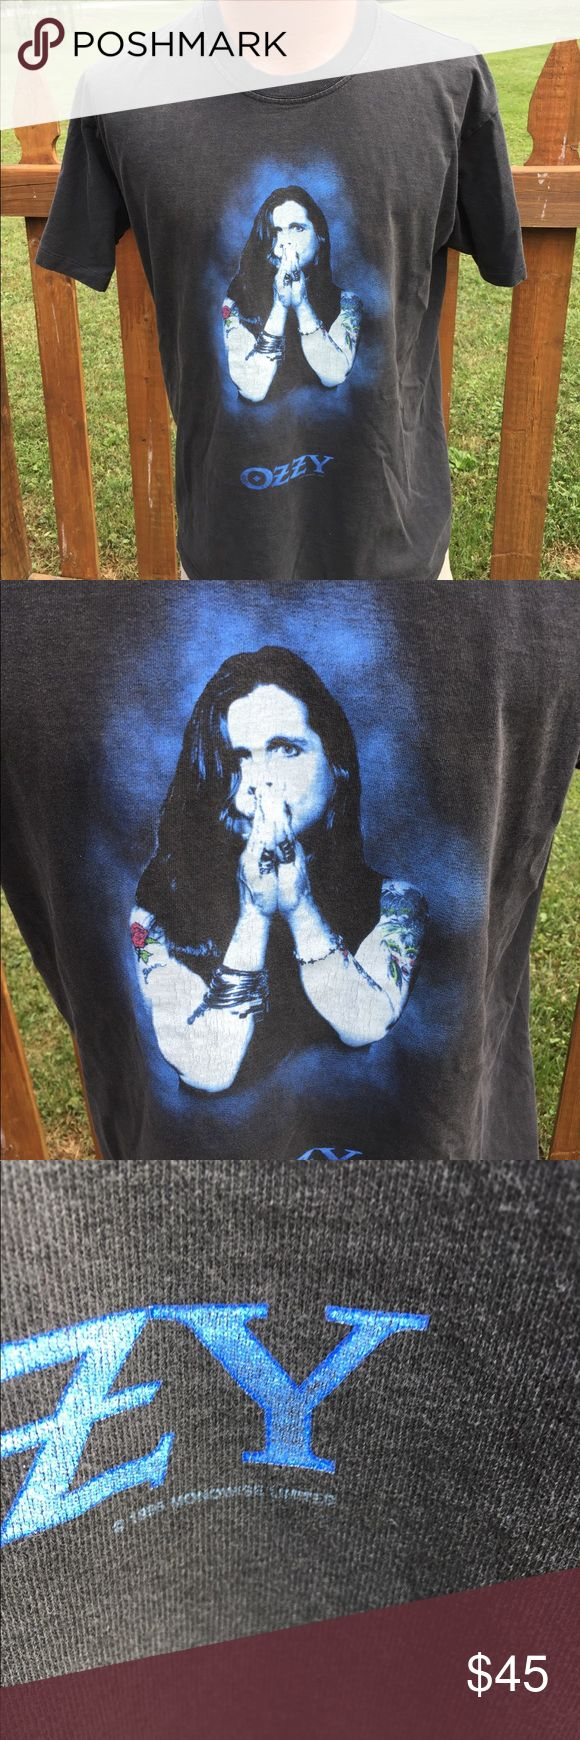 """Ozzy Osbourne Vintage Retirement Sucks Tour Shirt Size large. Super awesome throwback shirt. Some fading to the black as to be expected from age. Measures: shoulder to shoulder: 20"""". Pit to pit: 21"""". Bottom of the collar in the back to the bottom of the shirt: 29"""". Be sure to view the other items in our closet. We offer  women's, Mens and kids items in a variety of sizes. Bundle and save!! We love reasonable offers!! Thank you for viewing our item!! Touch of Gold Shirts Tees - Short Sleeve"""